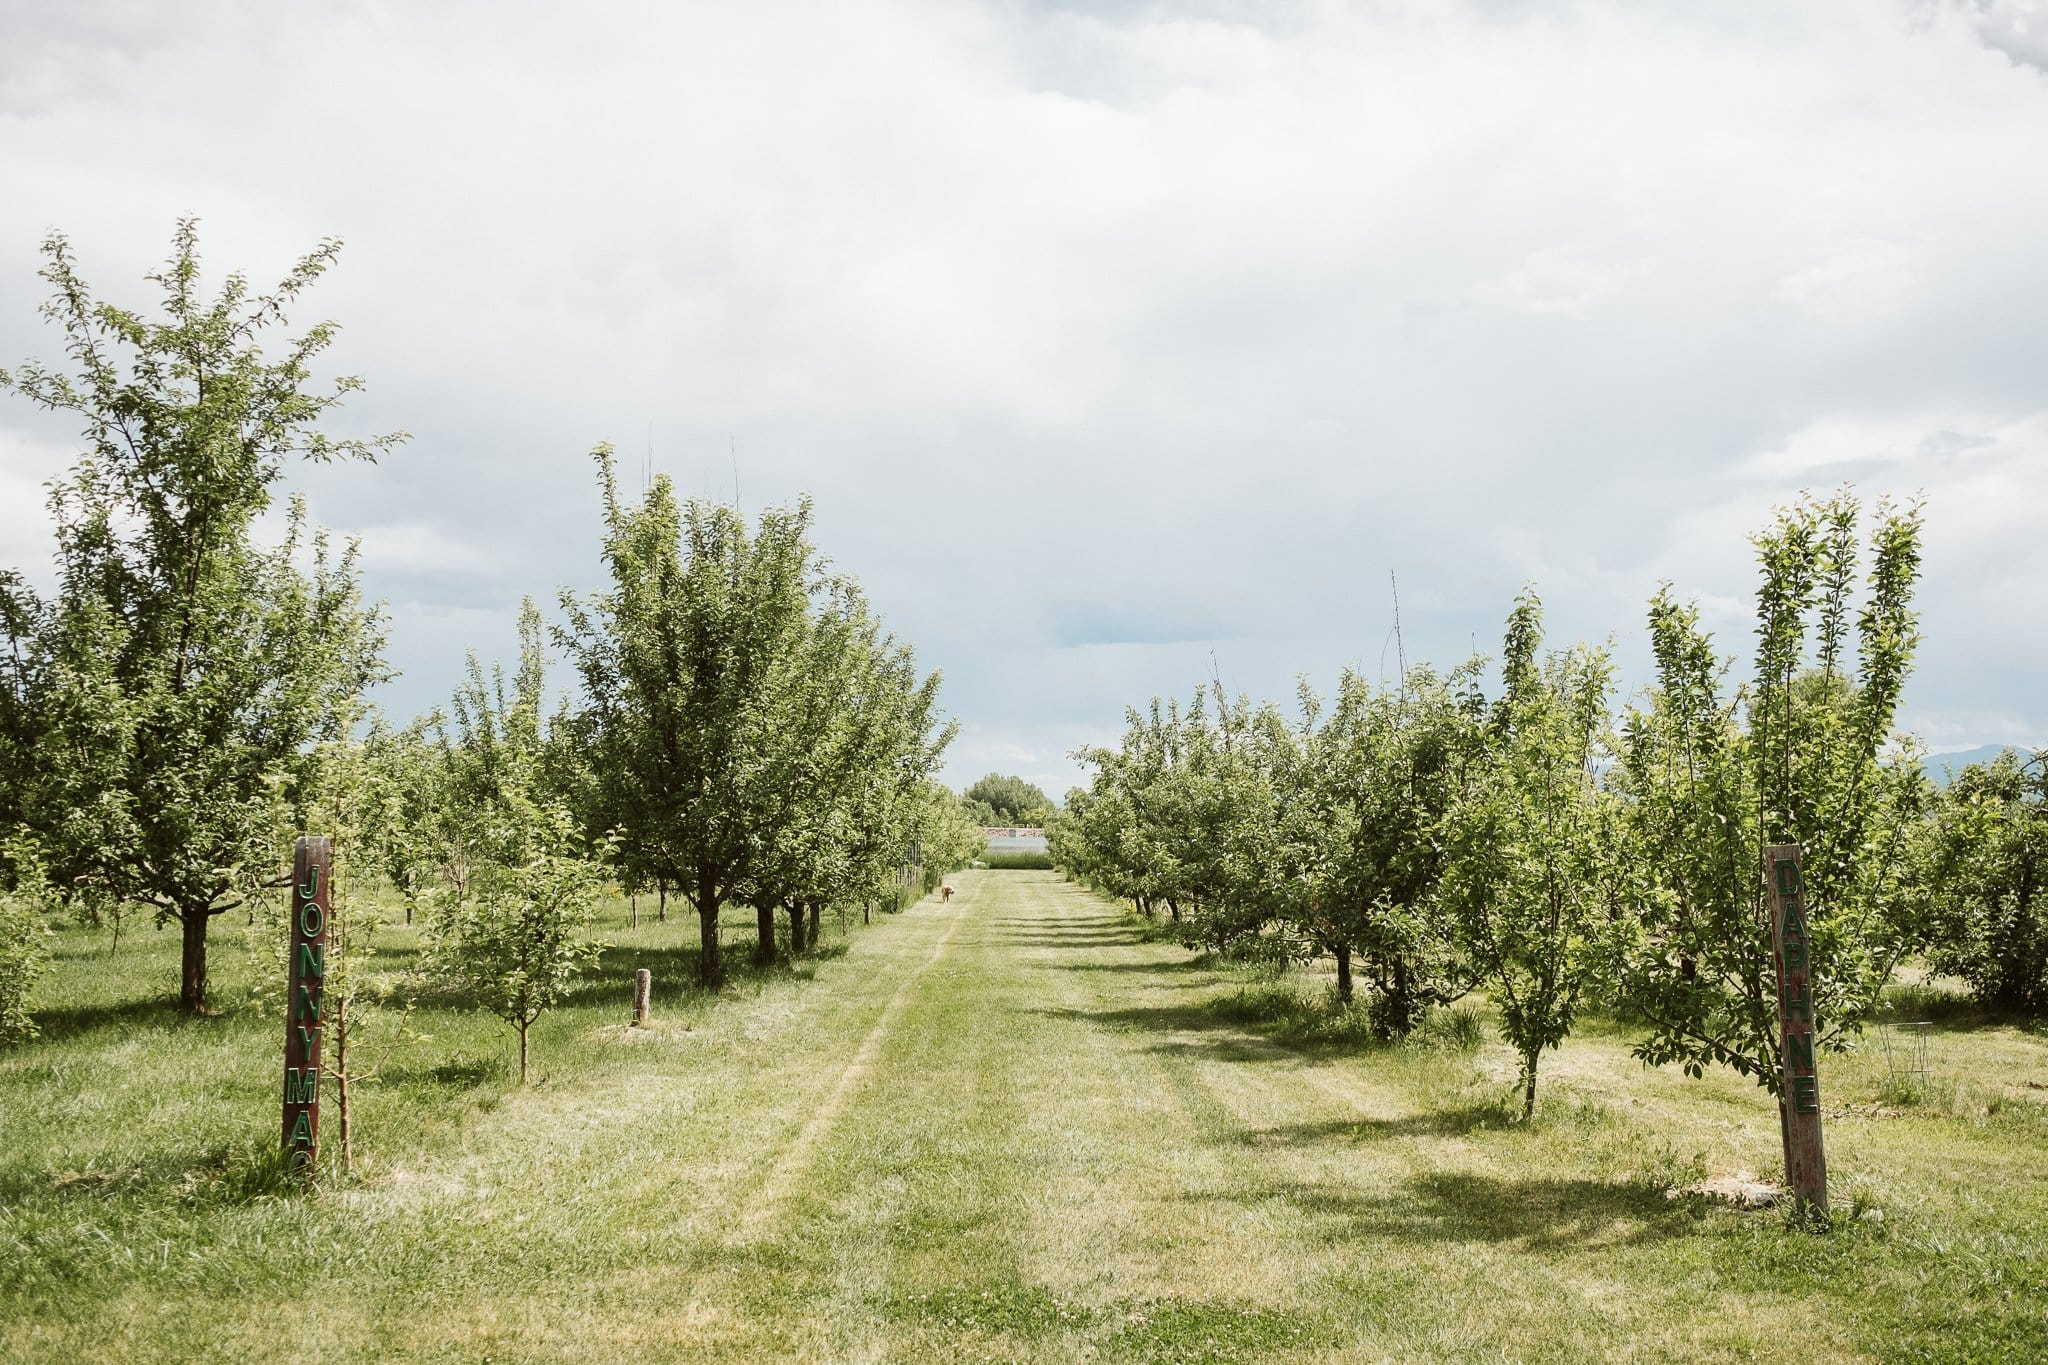 ya-ya-farm-orchard-lyons-wedding-venue-9